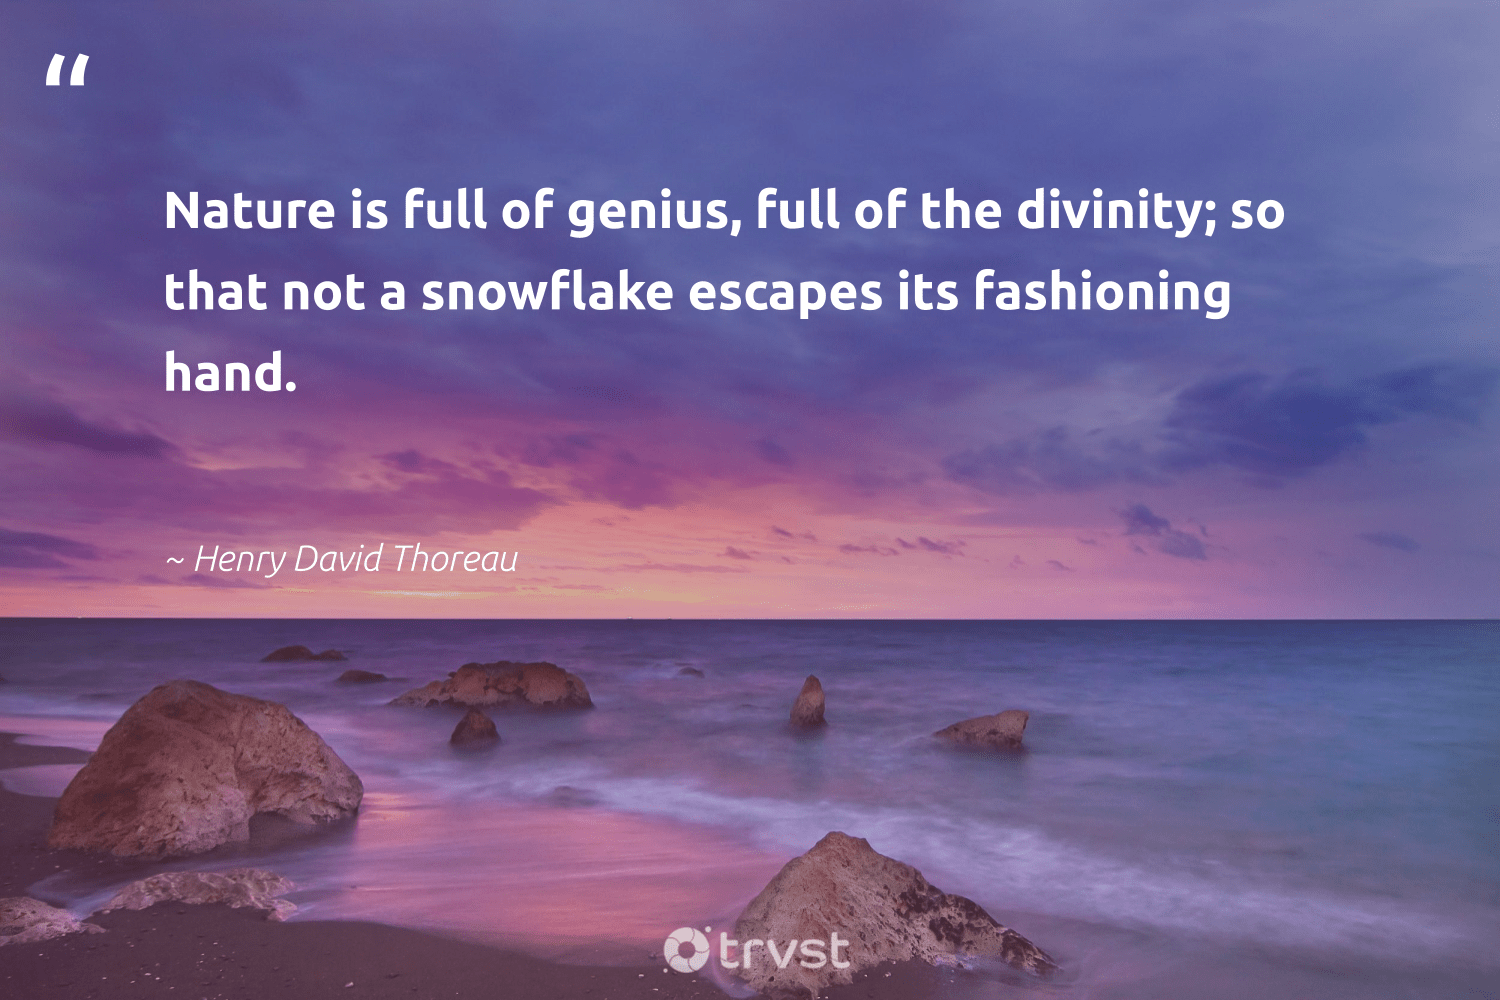 """""""Nature is full of genius, full of the divinity; so that not a snowflake escapes its fashioning hand.""""  - Henry David Thoreau #trvst #quotes #environment #nature #planet #volunteer #savetheplanet #collectiveaction #sustainable #earth #bethechange #conservation"""